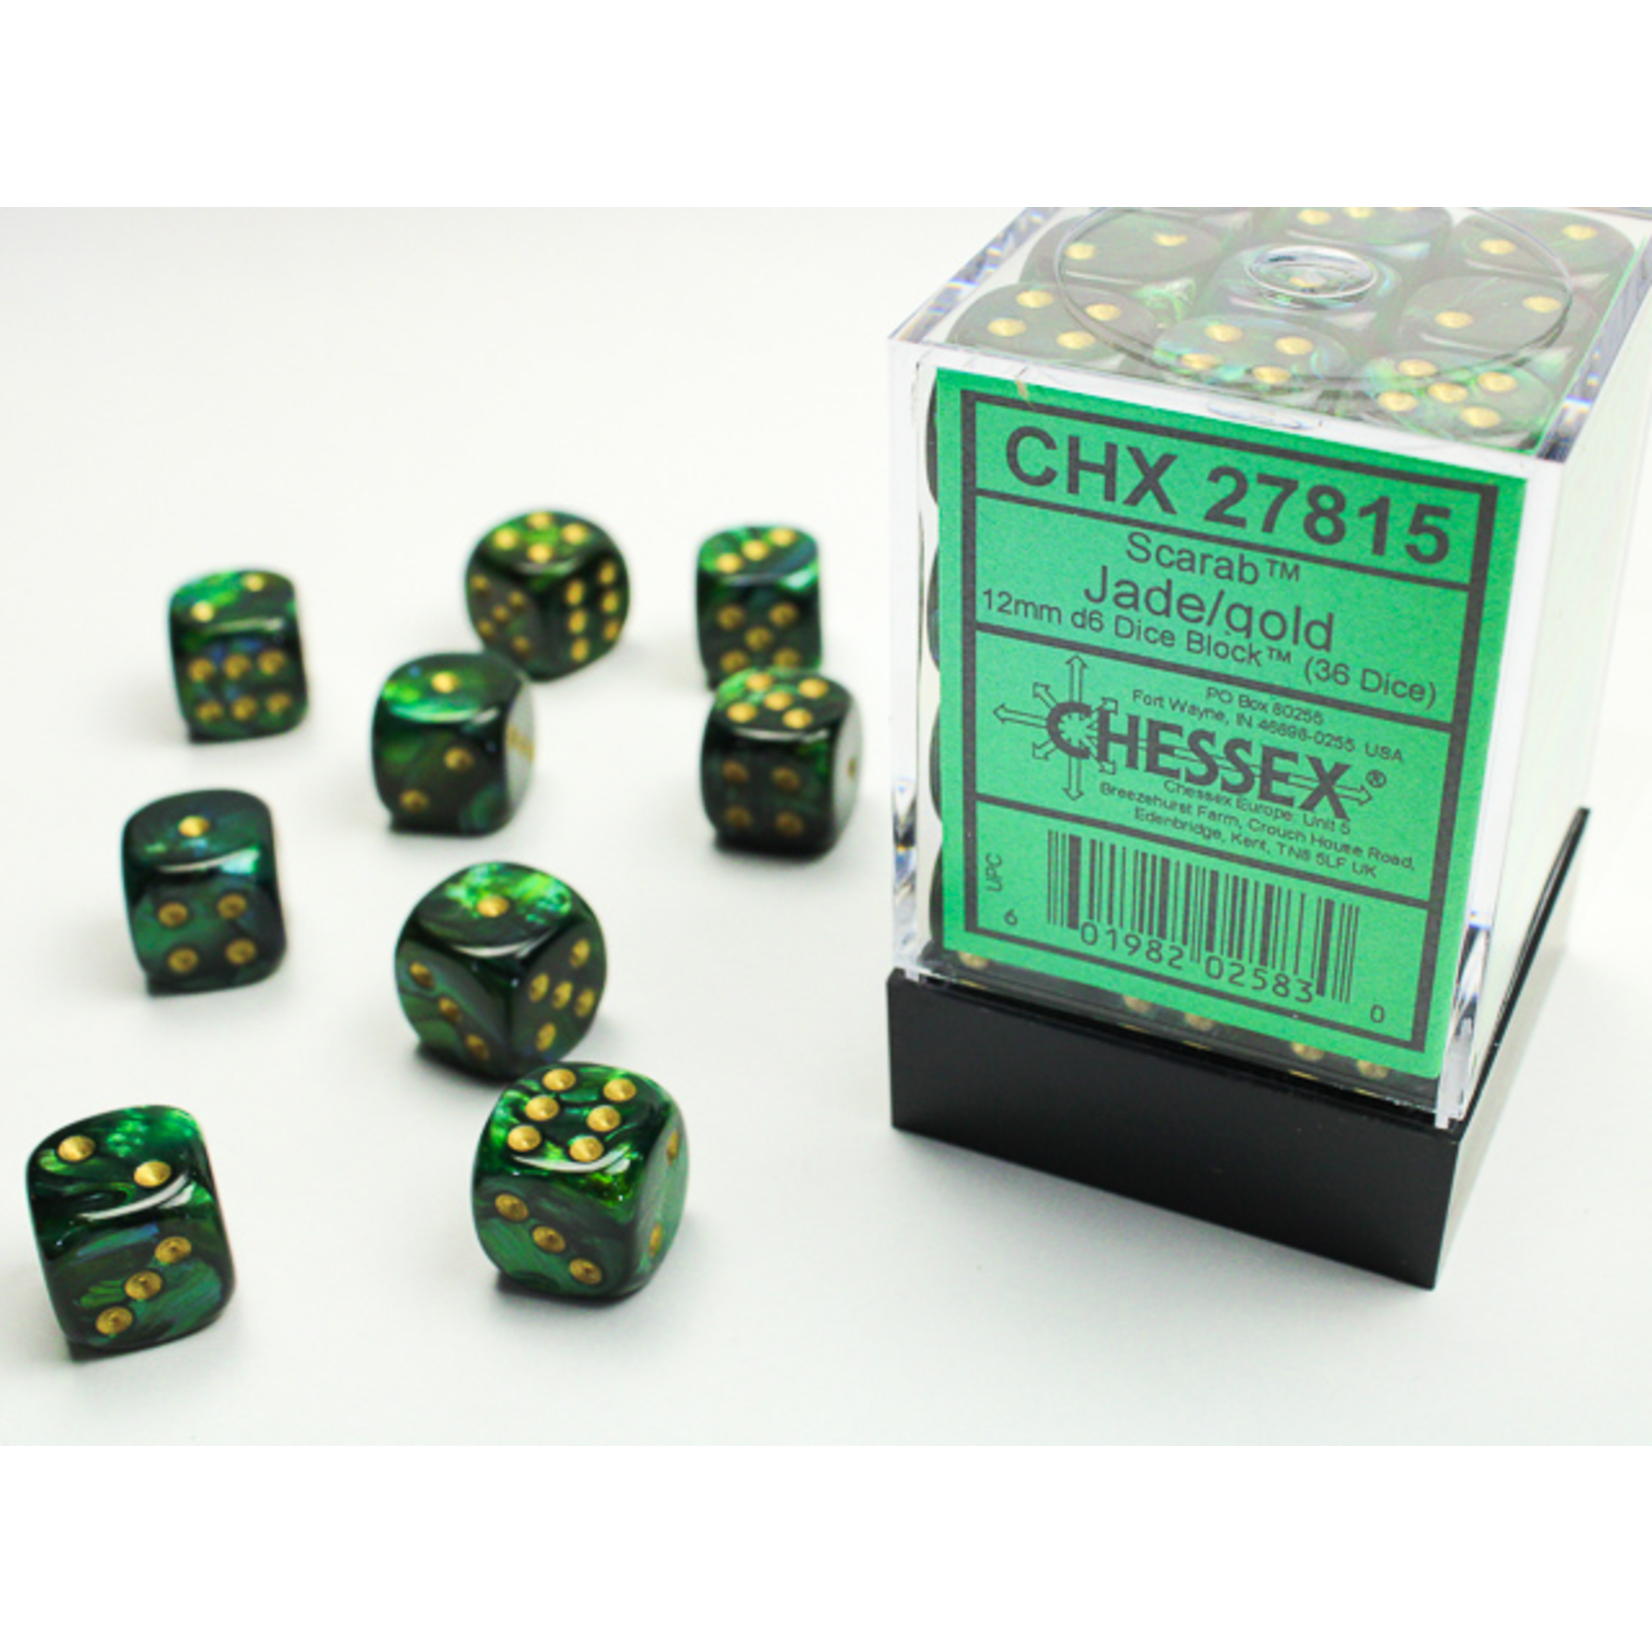 Chessex Dice: Dice: D6 Cube 12mm Scarab Jade with Gold Pips (CHX)